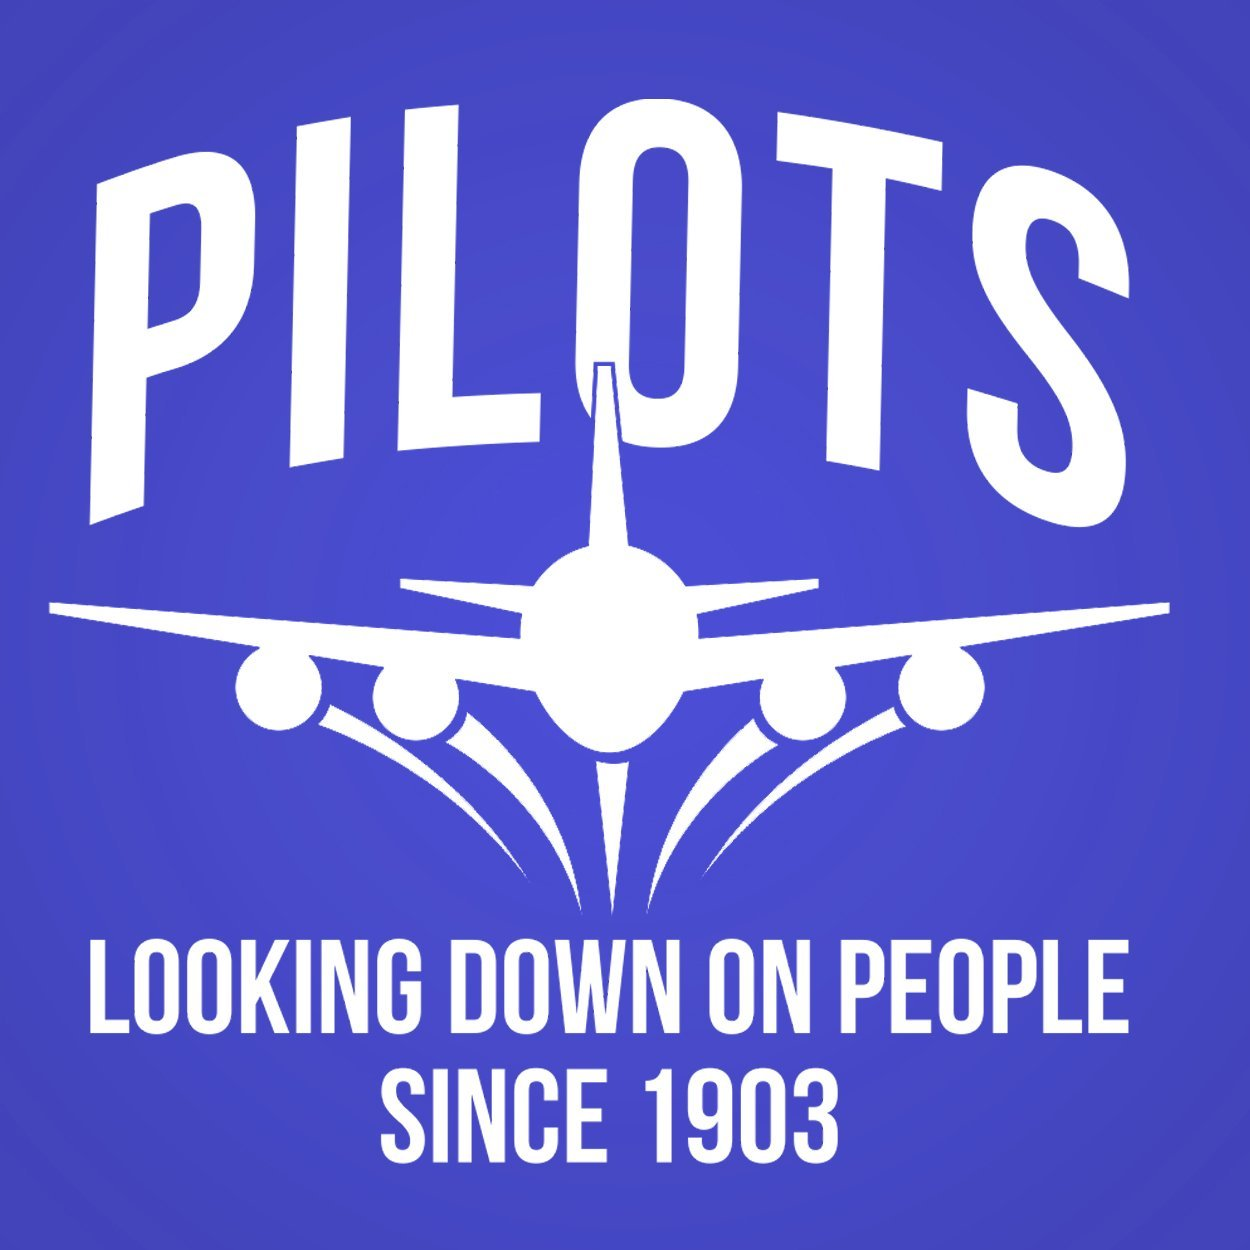 Pilots Looking Down On People - DonkeyTees